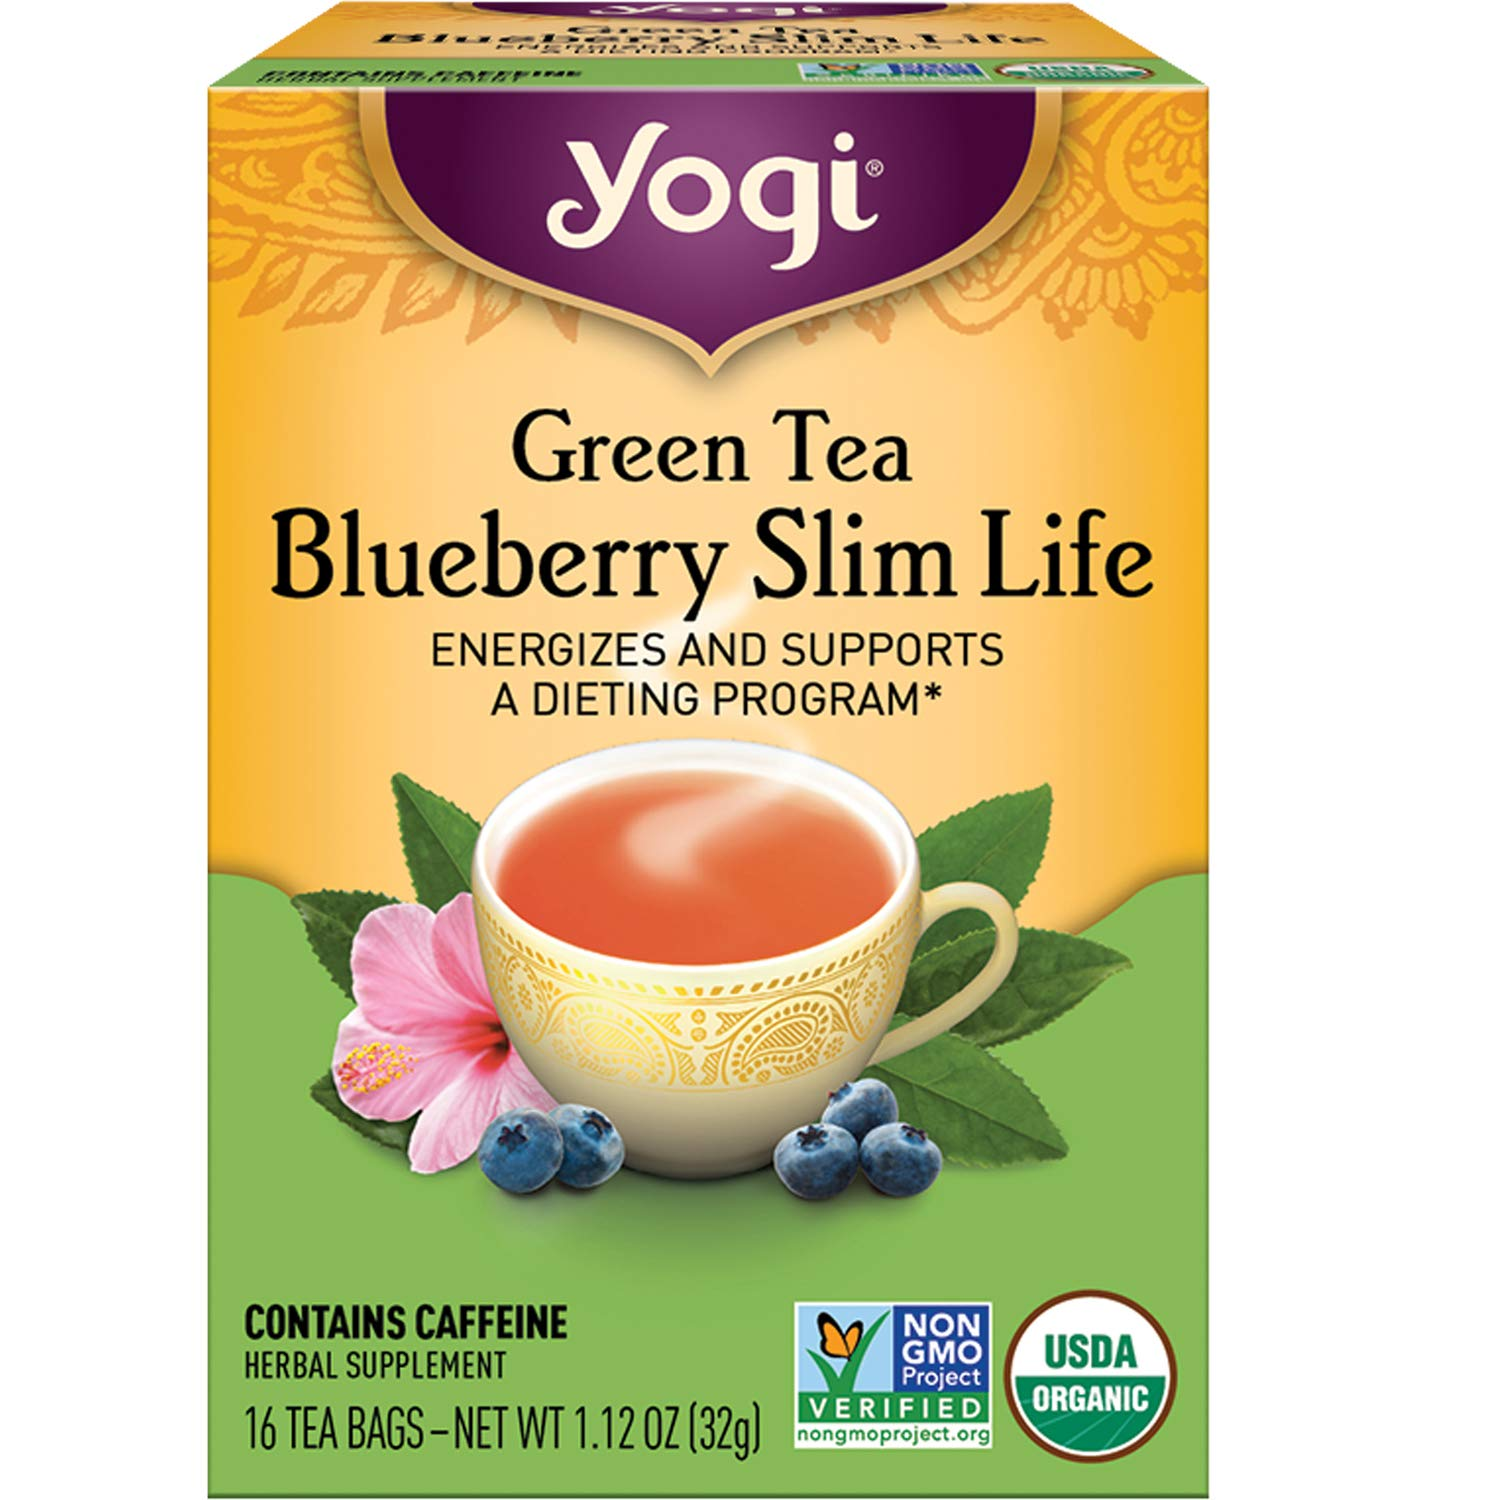 Yogi Tea - Green Tea Blueberry Slim Life (6 Pack) - Energizes and Supports a Dieting Program - 96 Tea Bags : Grocery & Gourmet Food